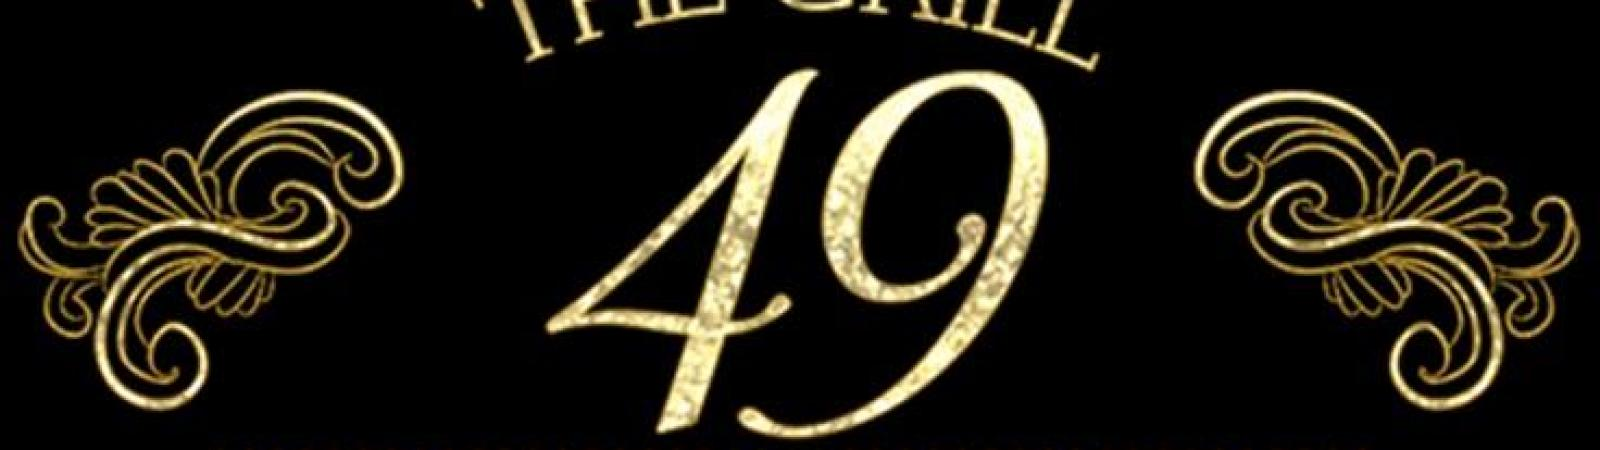 THE GRILL 49 on Cheltenham Night Out | Promoting Cheltenham's nightlife for a great night out in Cheltenham.